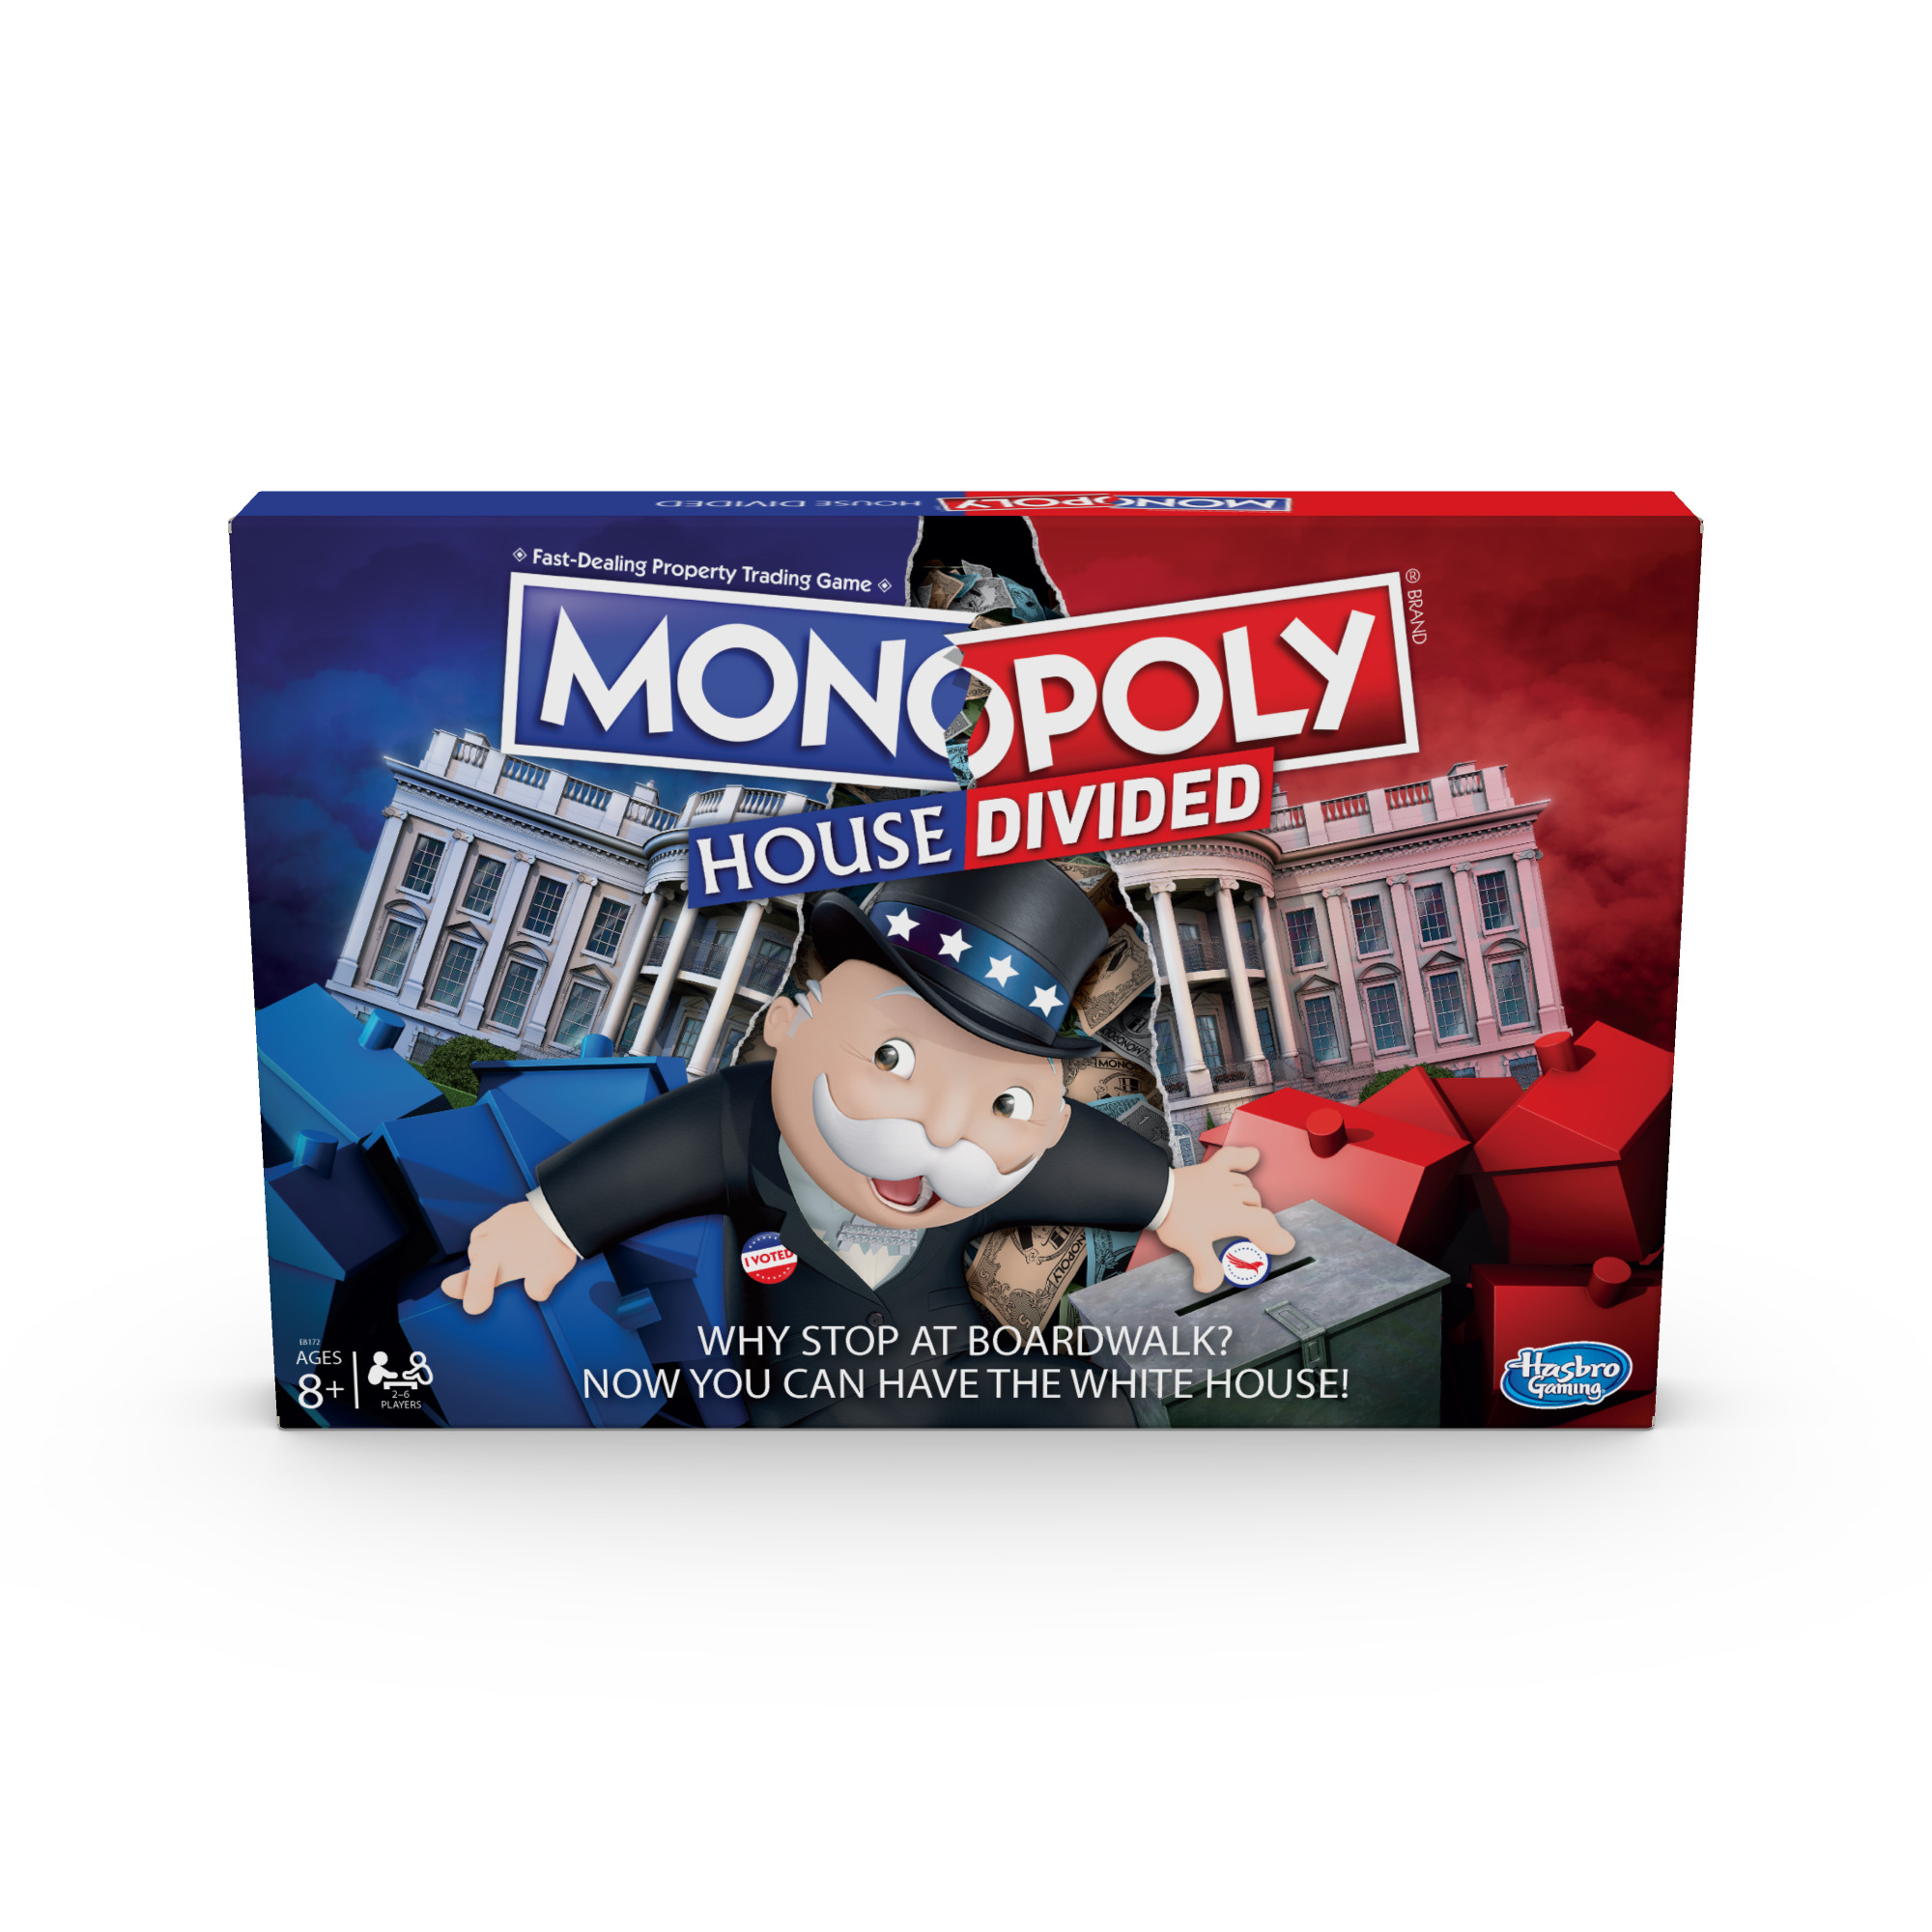 Monopoly House Divided Board Game: Elections, White House Themed Game, for Ages 8 and Up (Walmart)